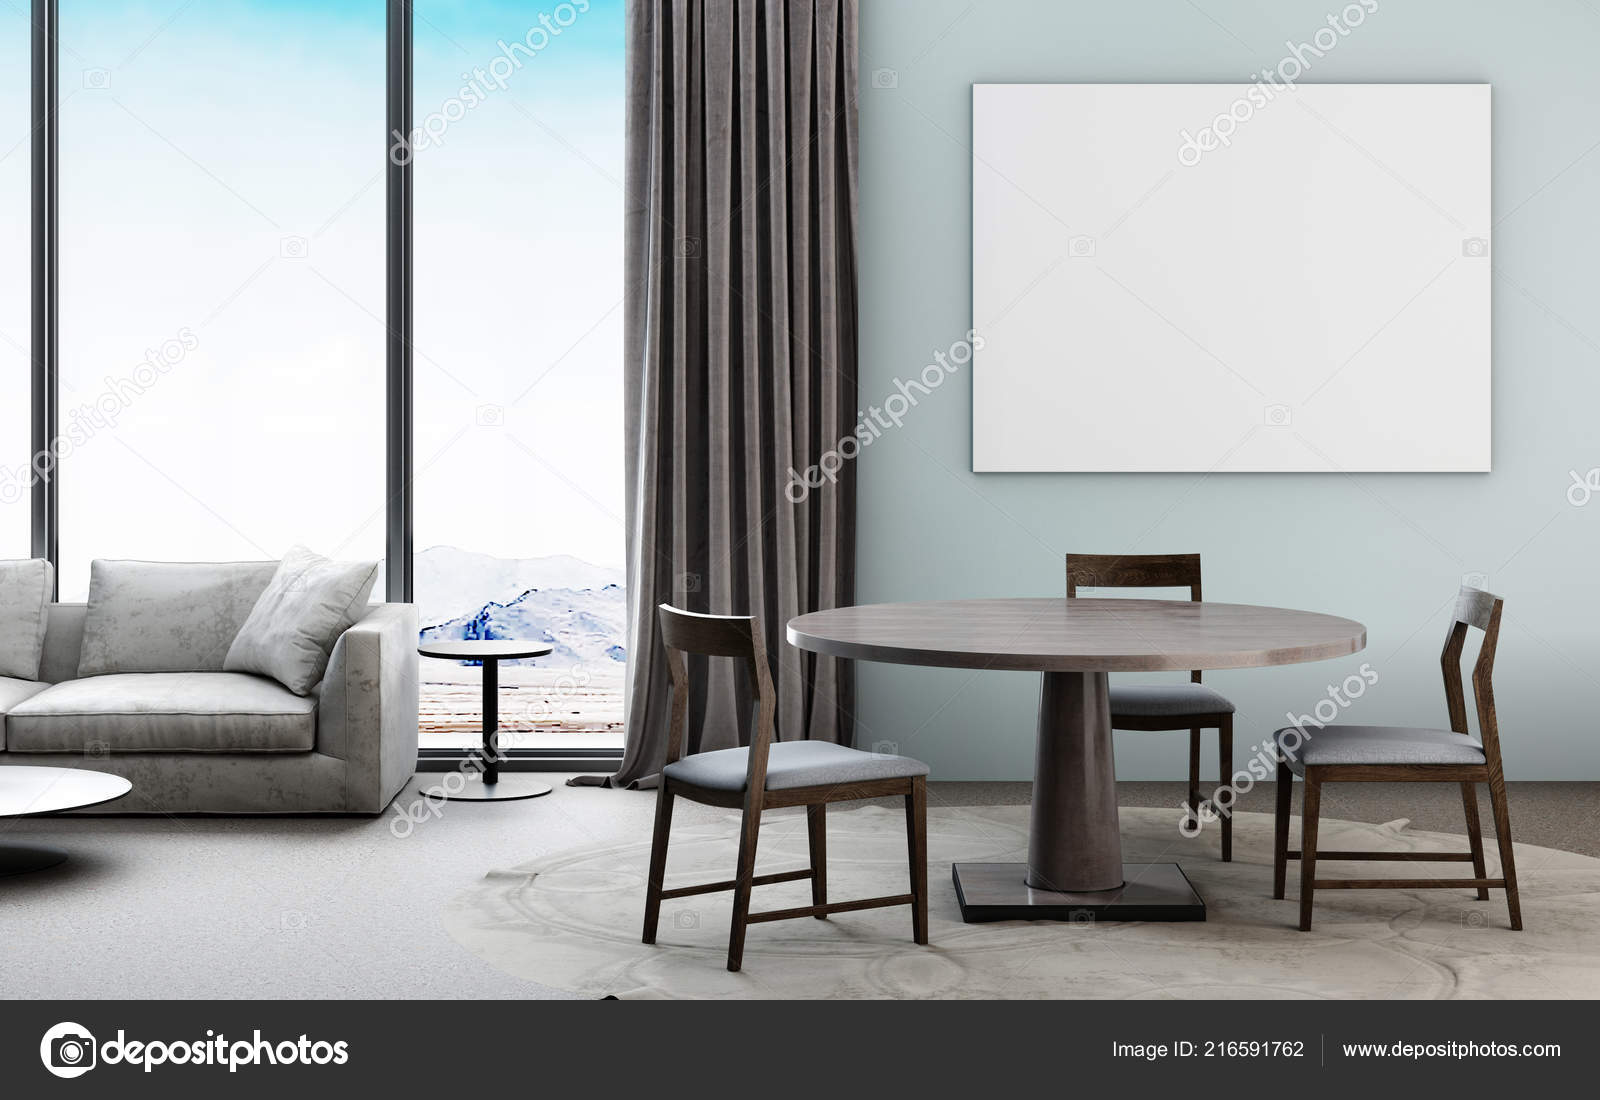 Beautiful Living Room Interior Mockup Poster Dining New Contemporary